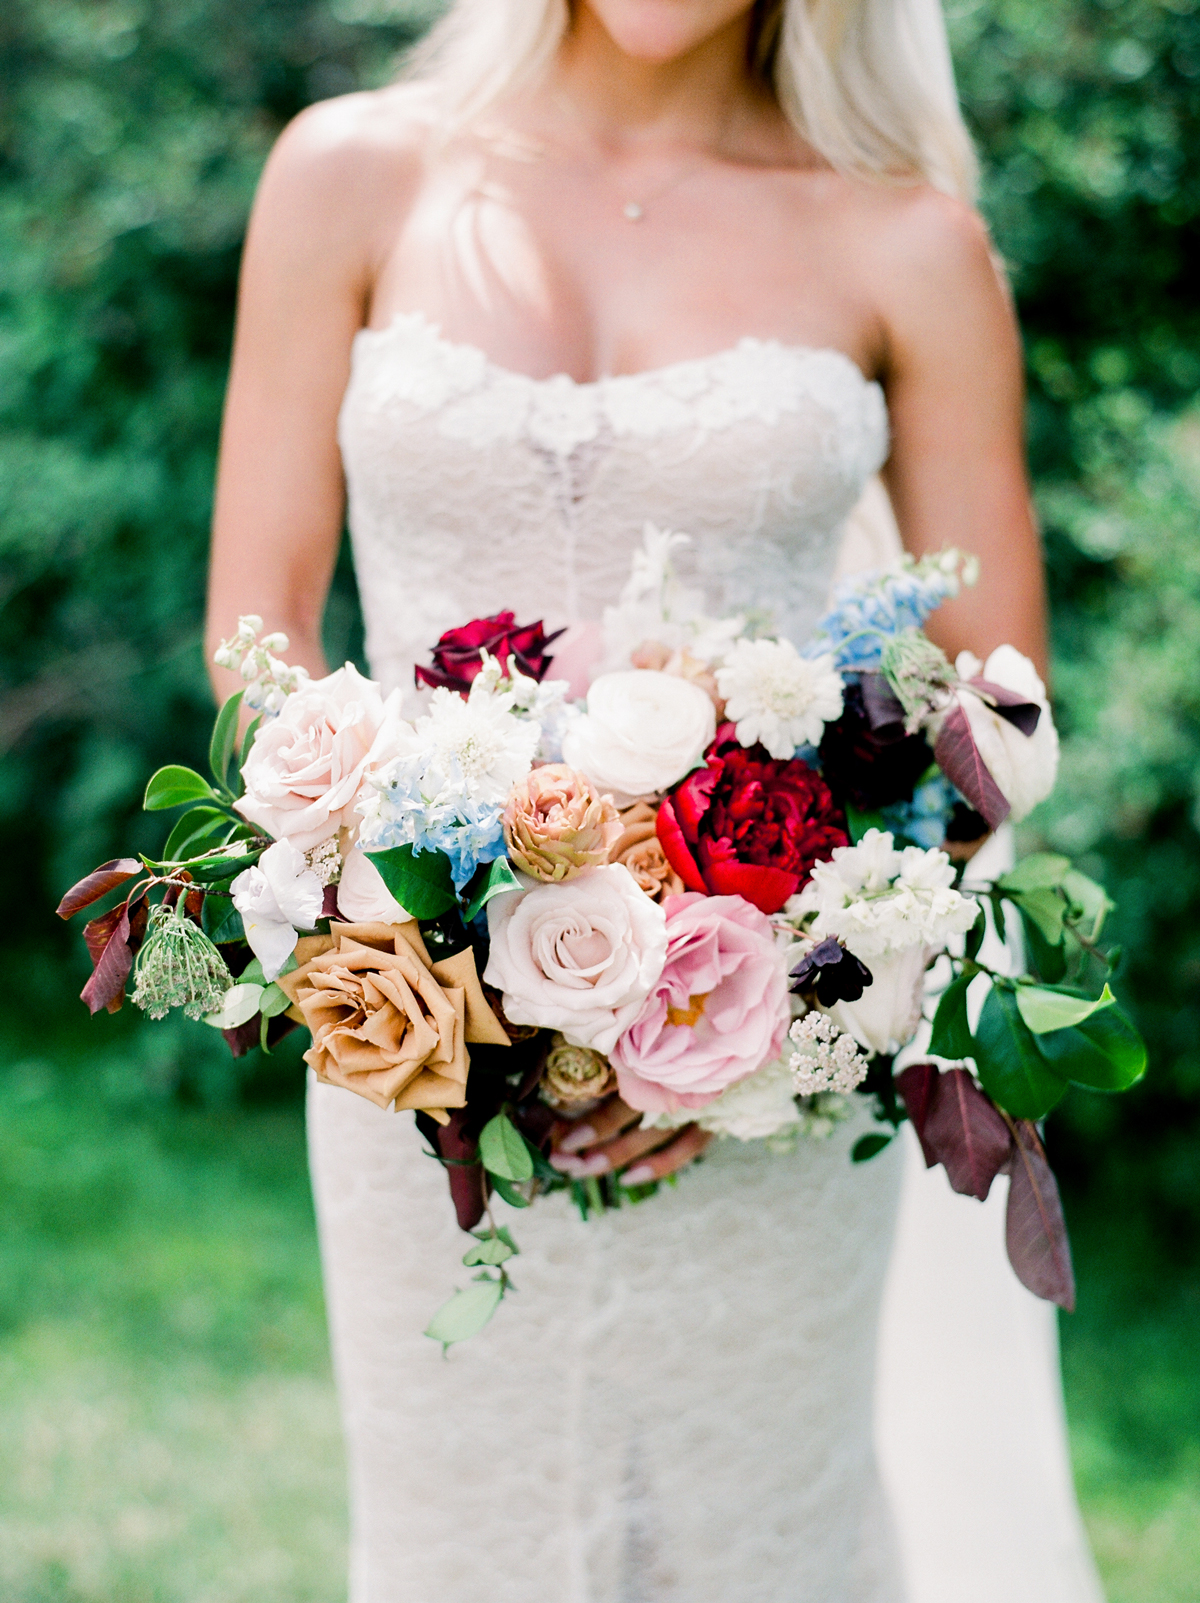 bride holding bouquet with multi-colored roses